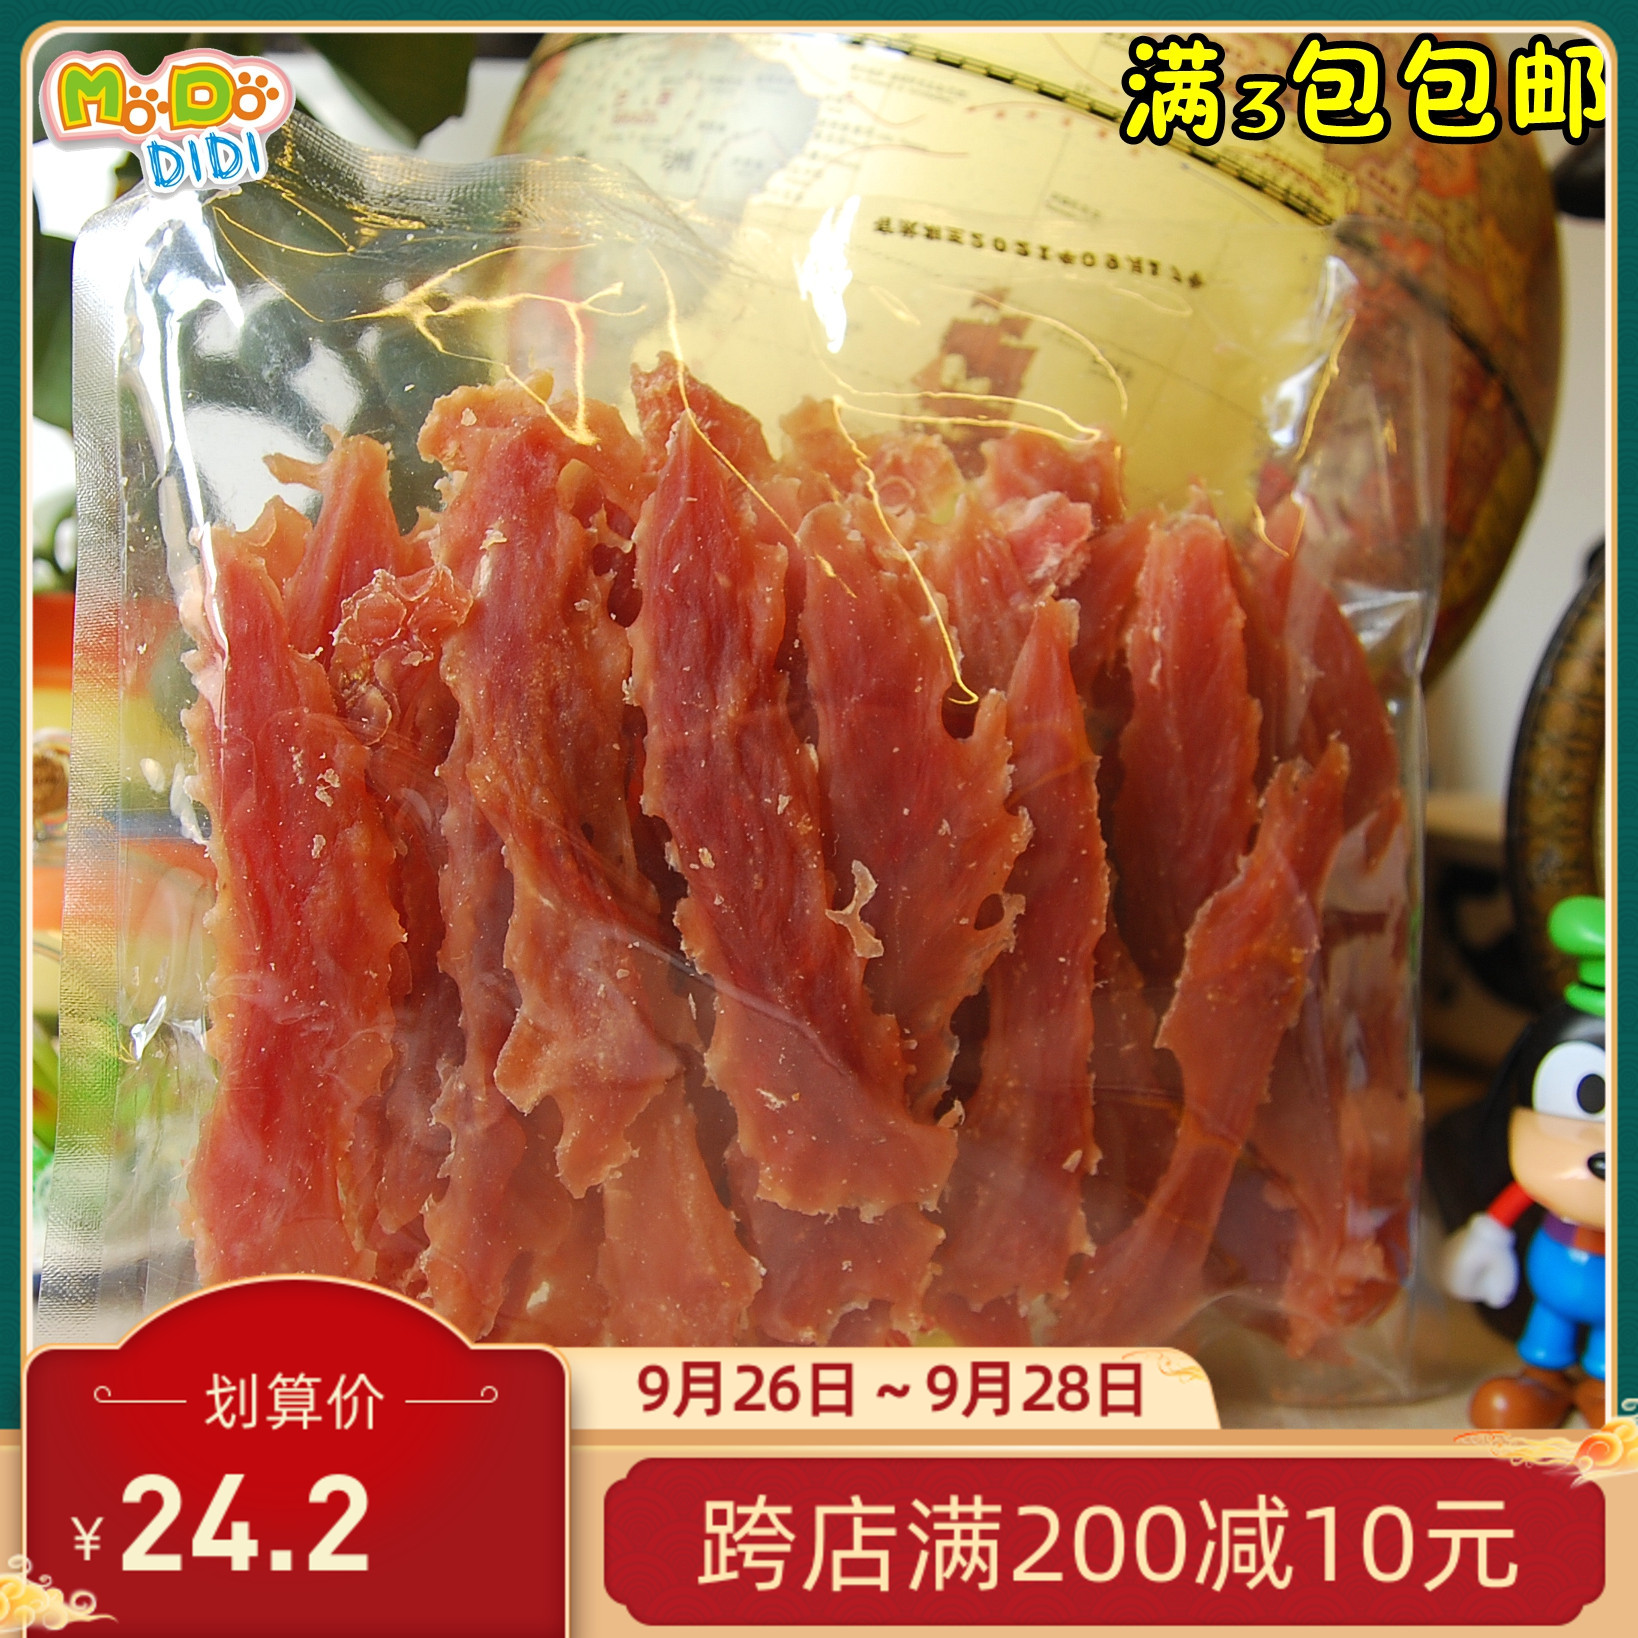 Super fresh and good export Zhengdan dogs favorite multi flavor duck slices 400g classic snacks 3 Pack post